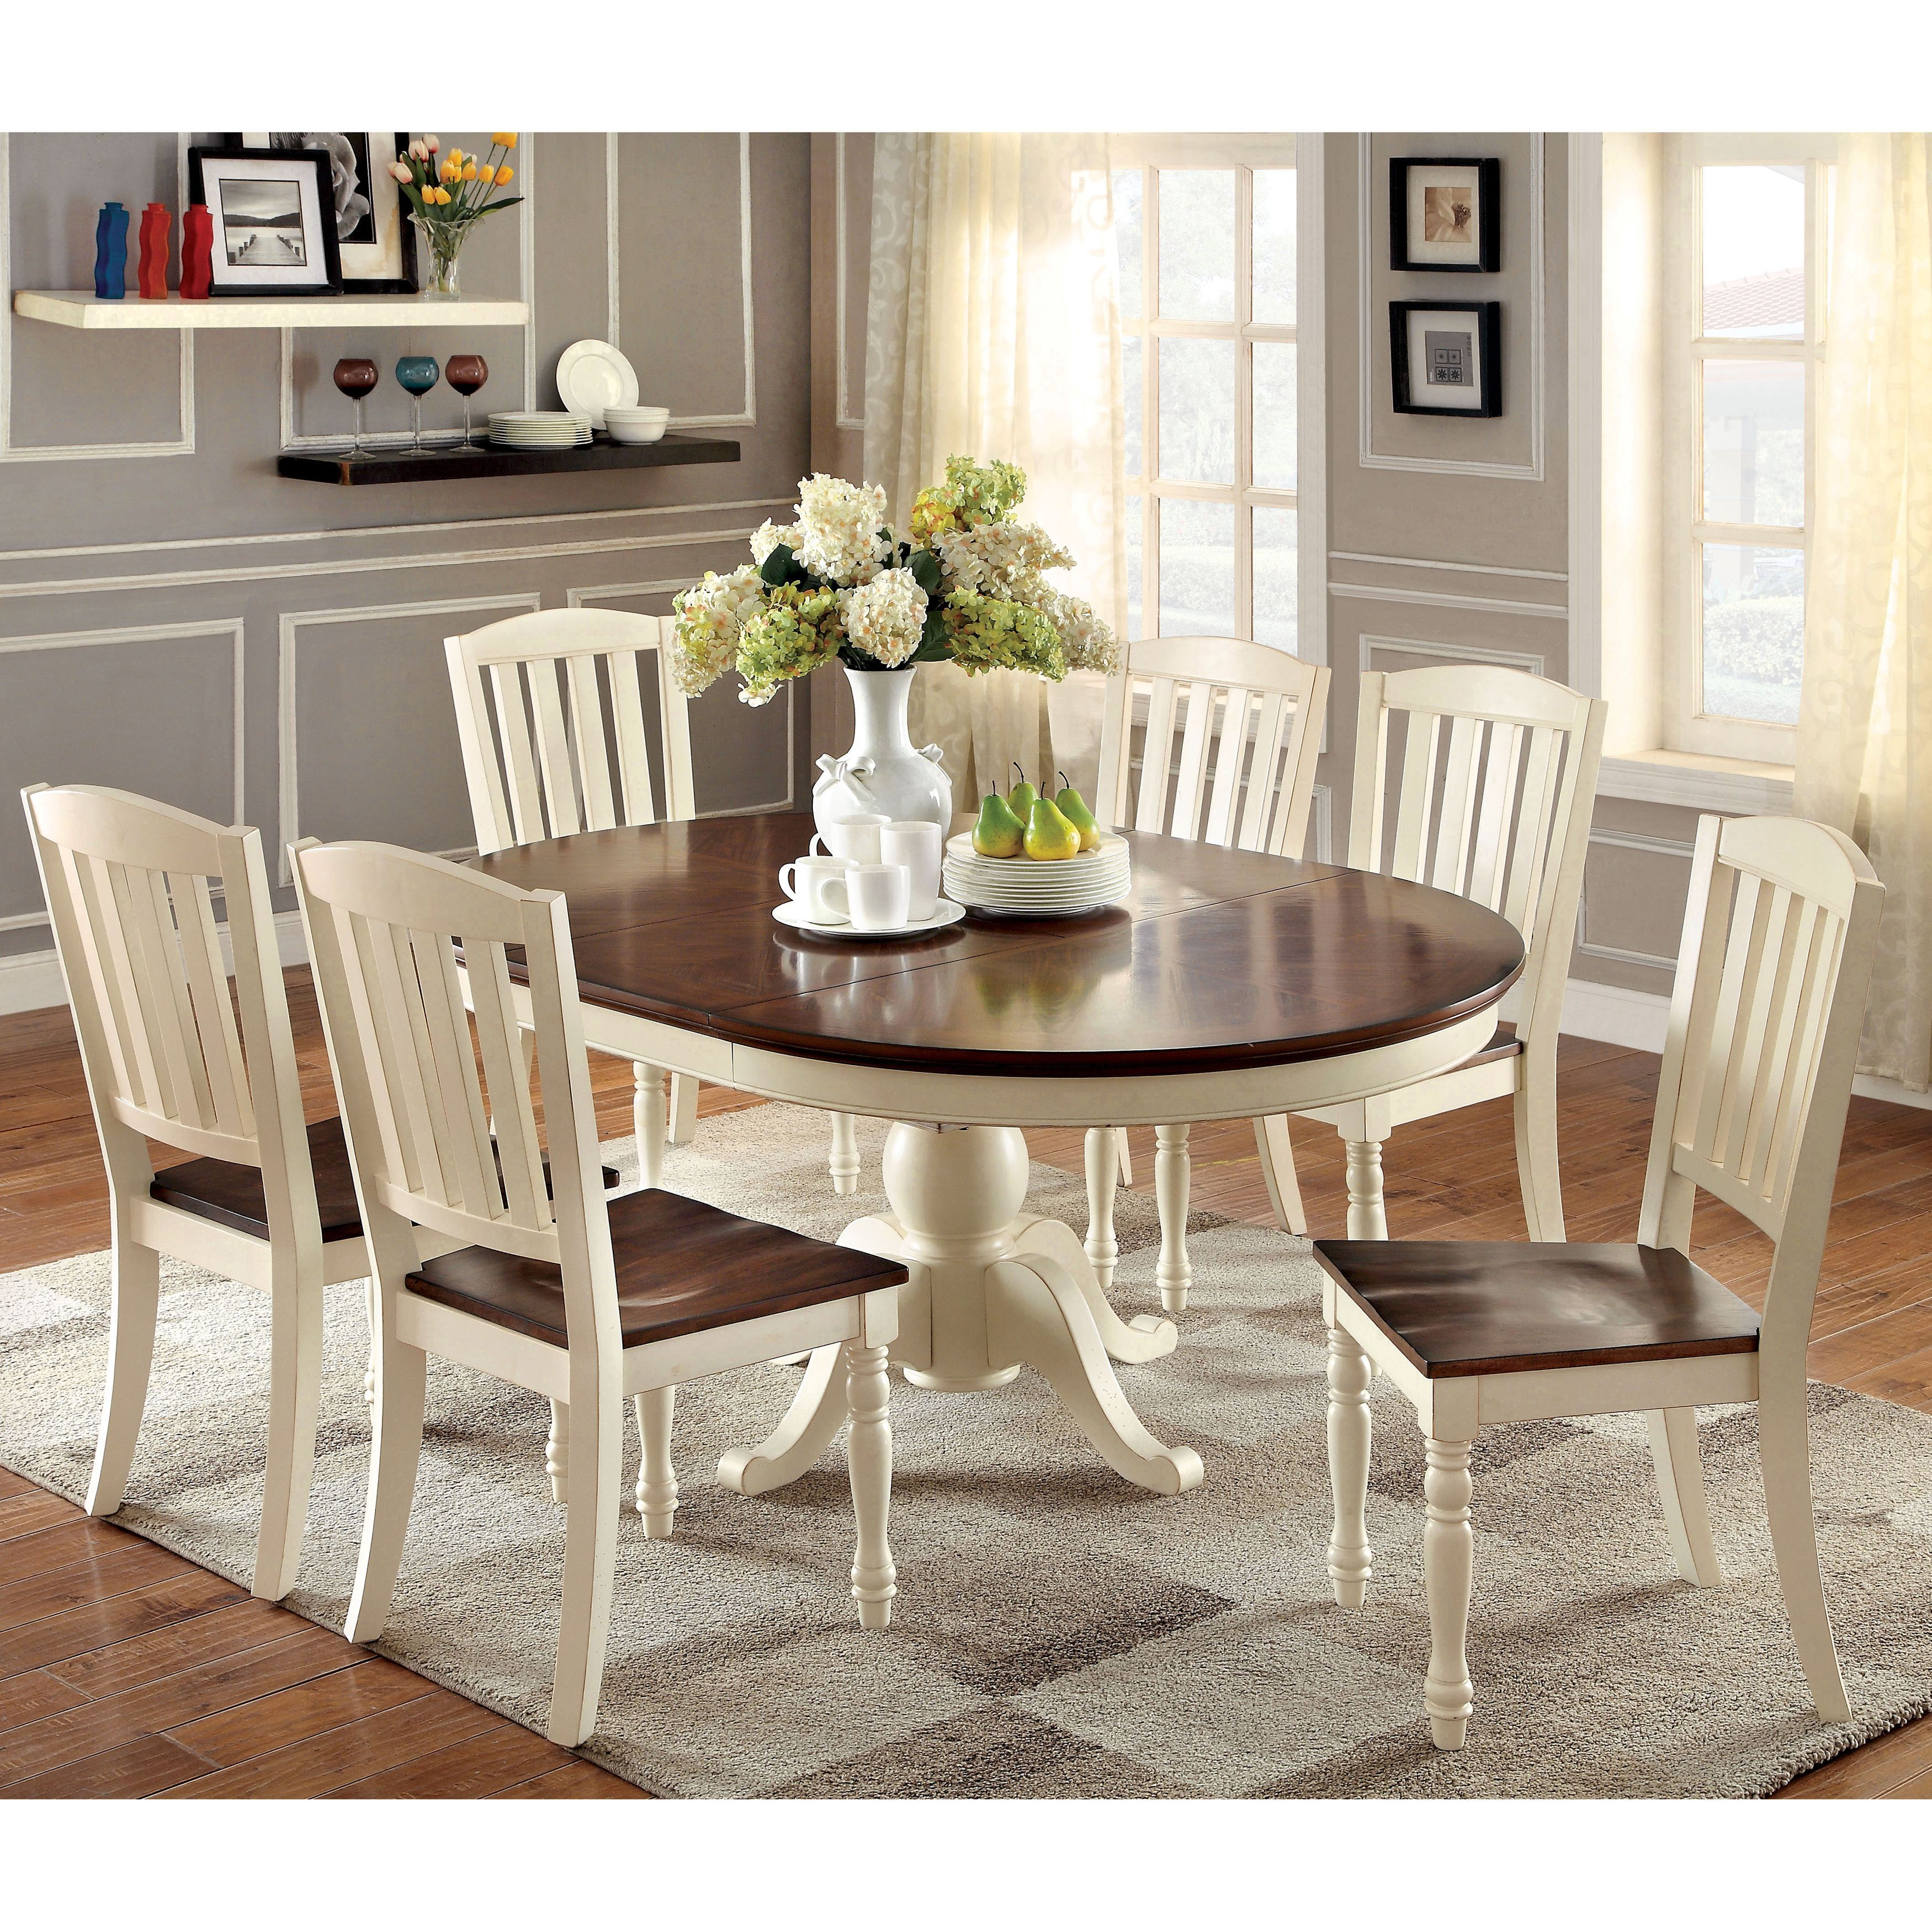 Add brightness to your kitchen or dining area with the Bethannie ...